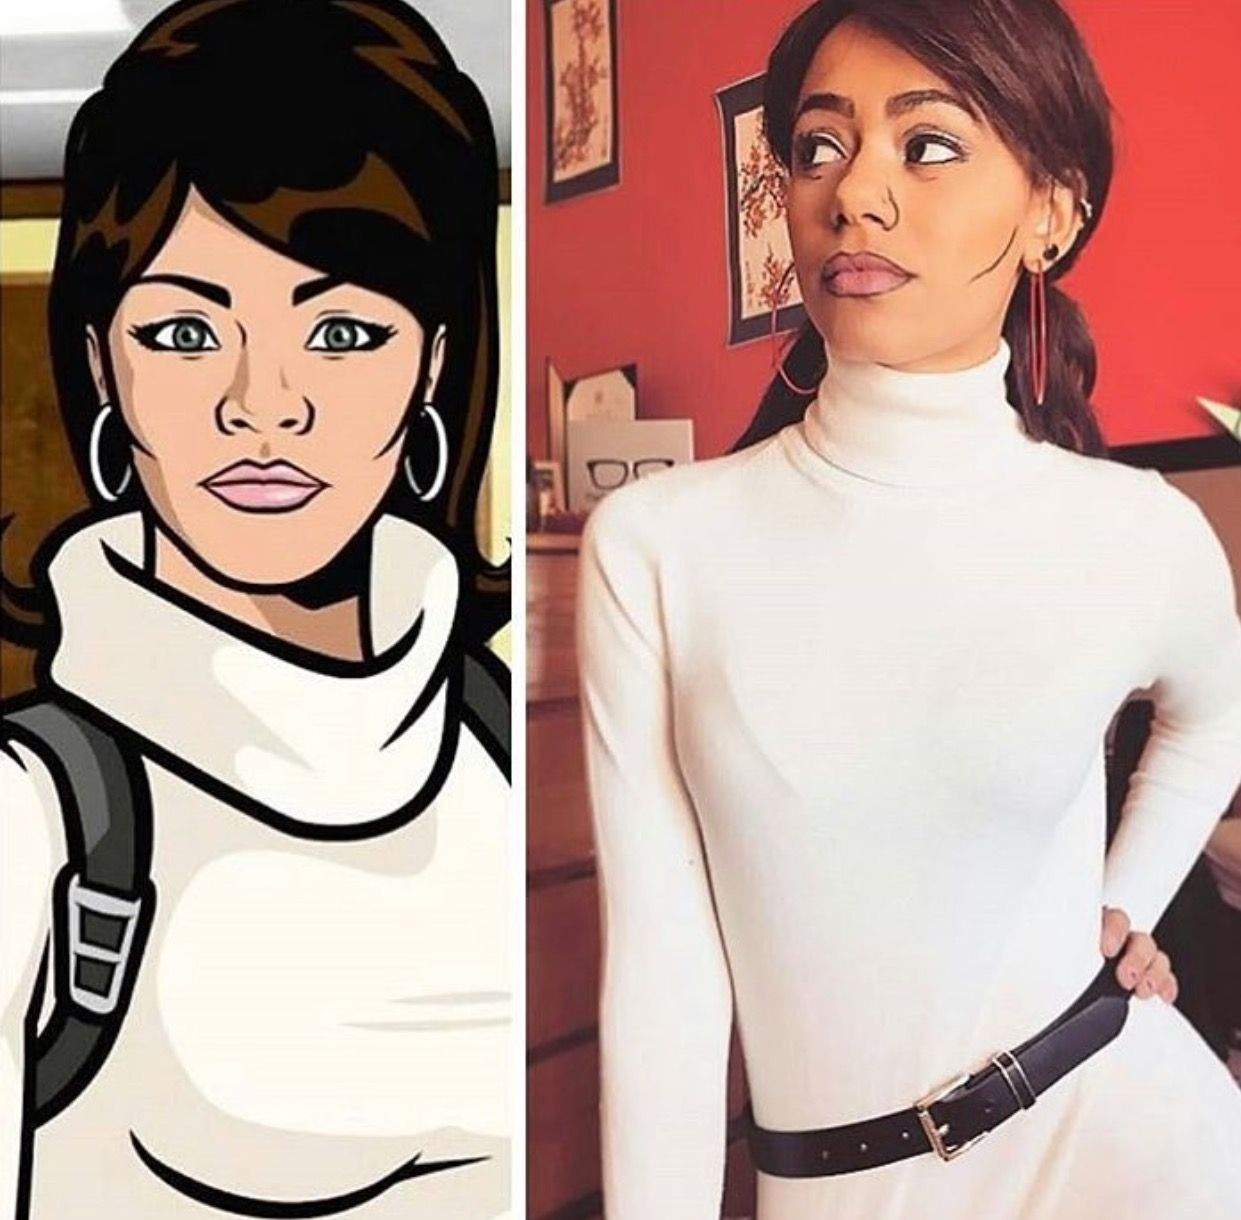 Costume Lana Kane from Archer Worn by Blackkrystal Check out more cosplay and Halloween · White TigersHalloween Costume IdeasArcherBlack WomenAfrican ...  sc 1 st  Pinterest & Costume: Lana Kane from Archer Worn by: Blackkrystal Check out more ...